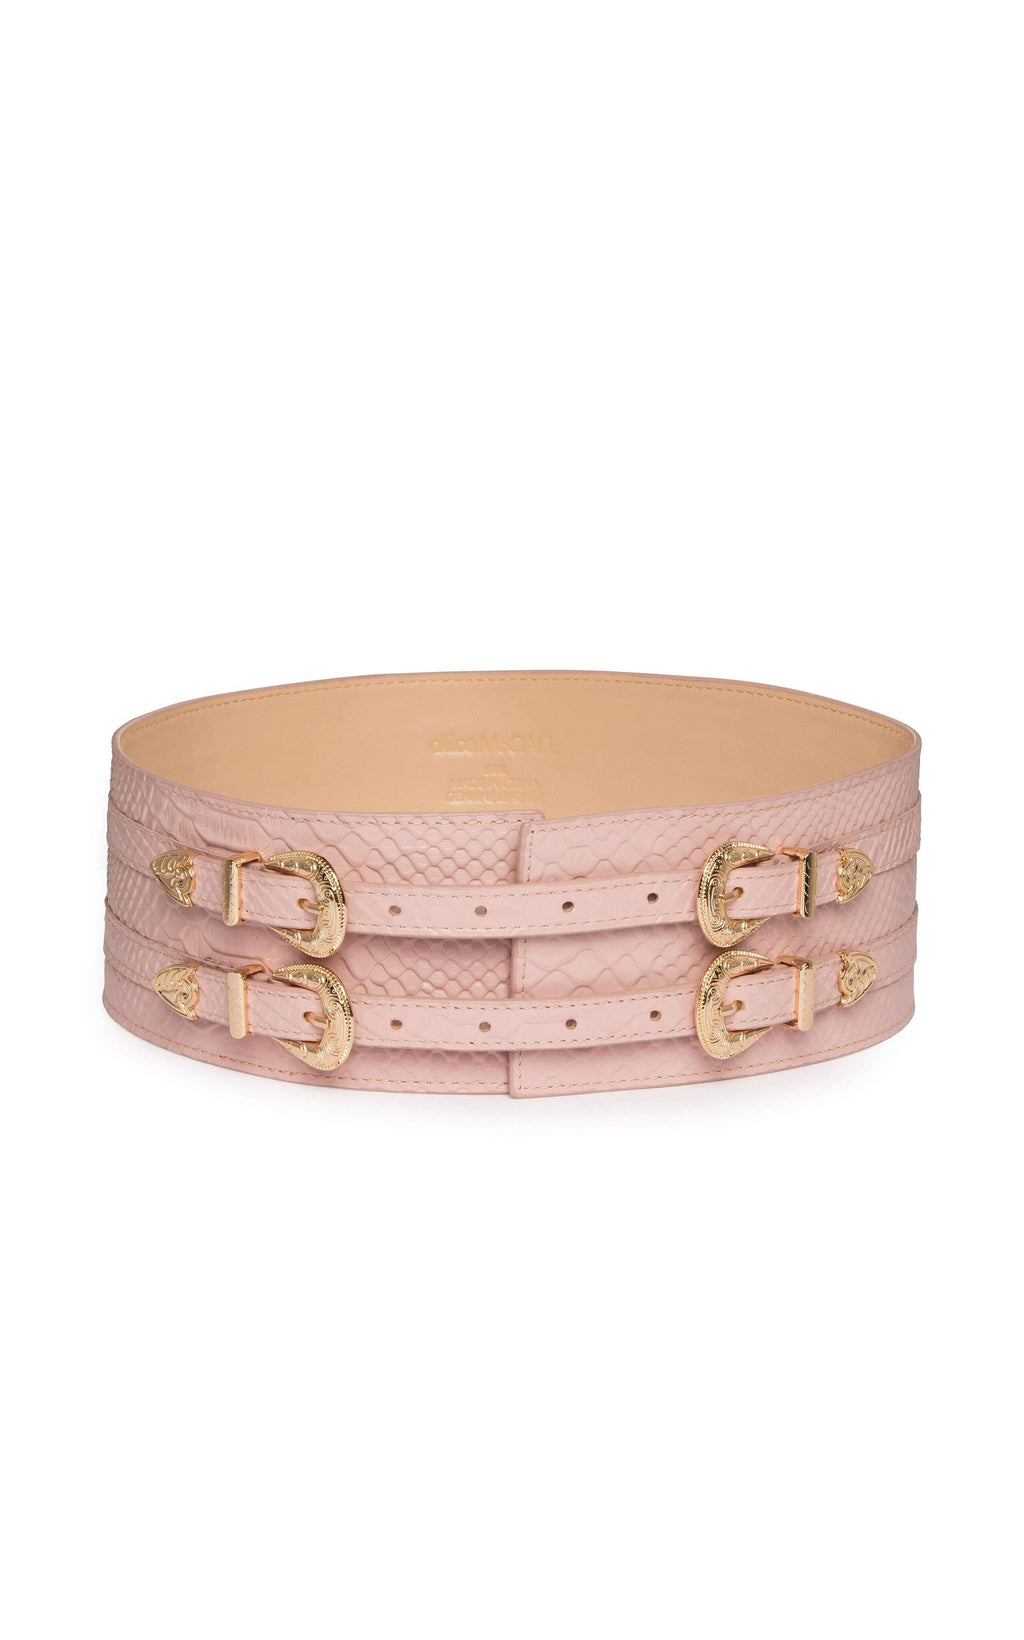 Alice McCall Walk All Over You Belt BLUSH